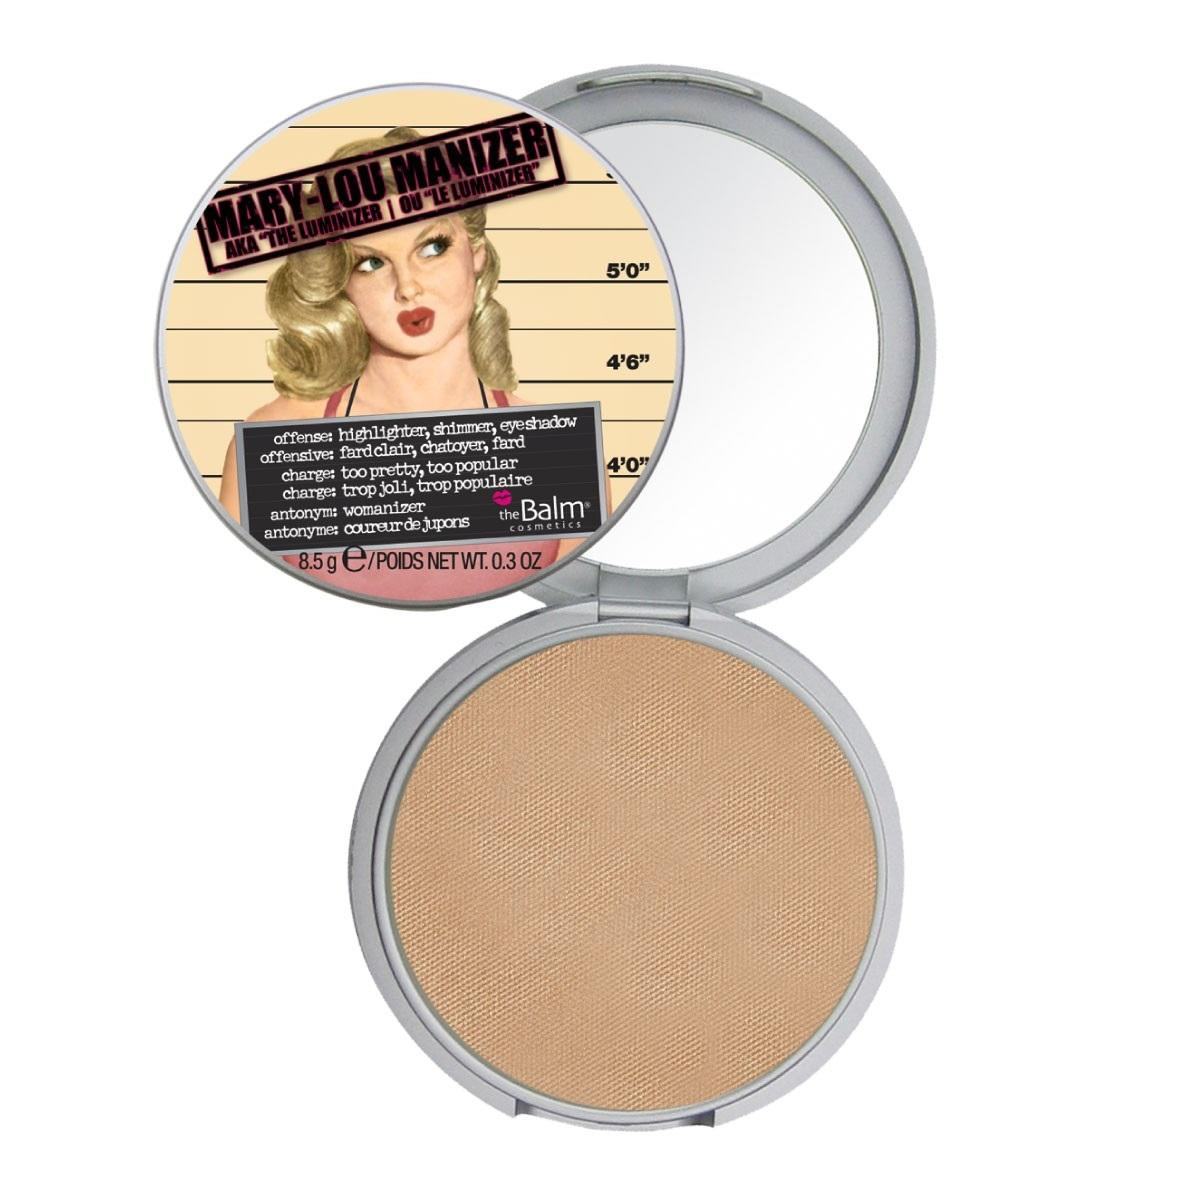 The Balm Highlighter Shimmer Pressed Powder Mary-Lou Manizer